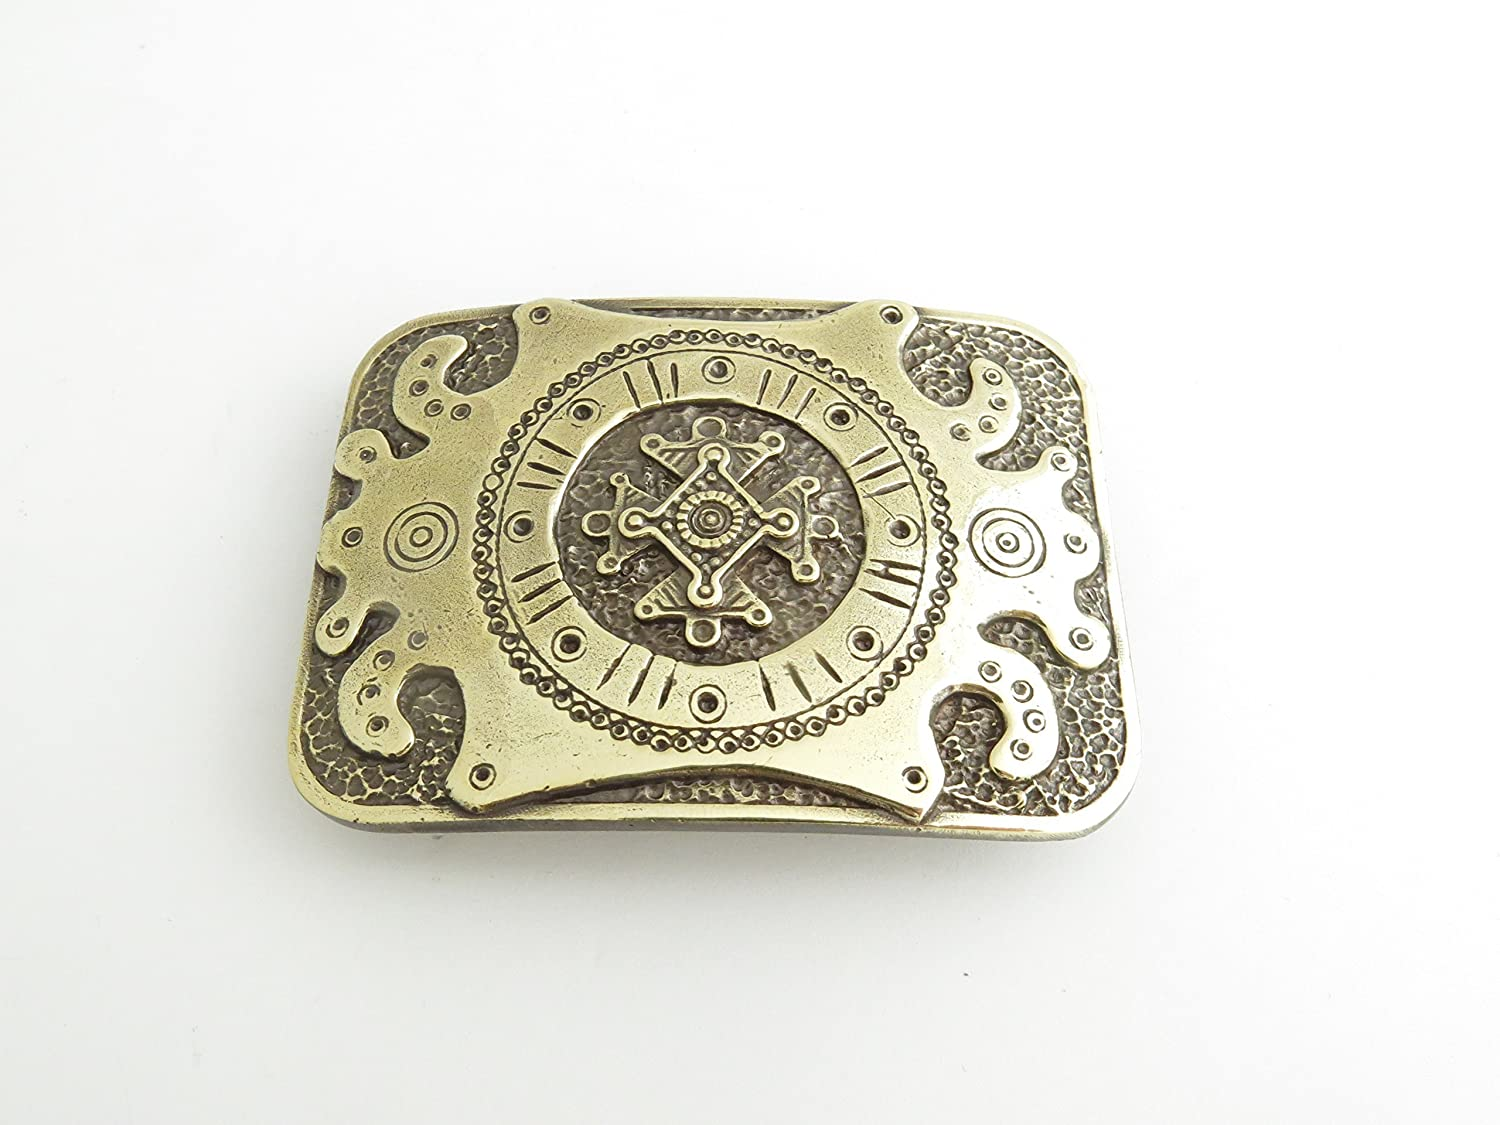 Unique Ornamental Belt Buckle